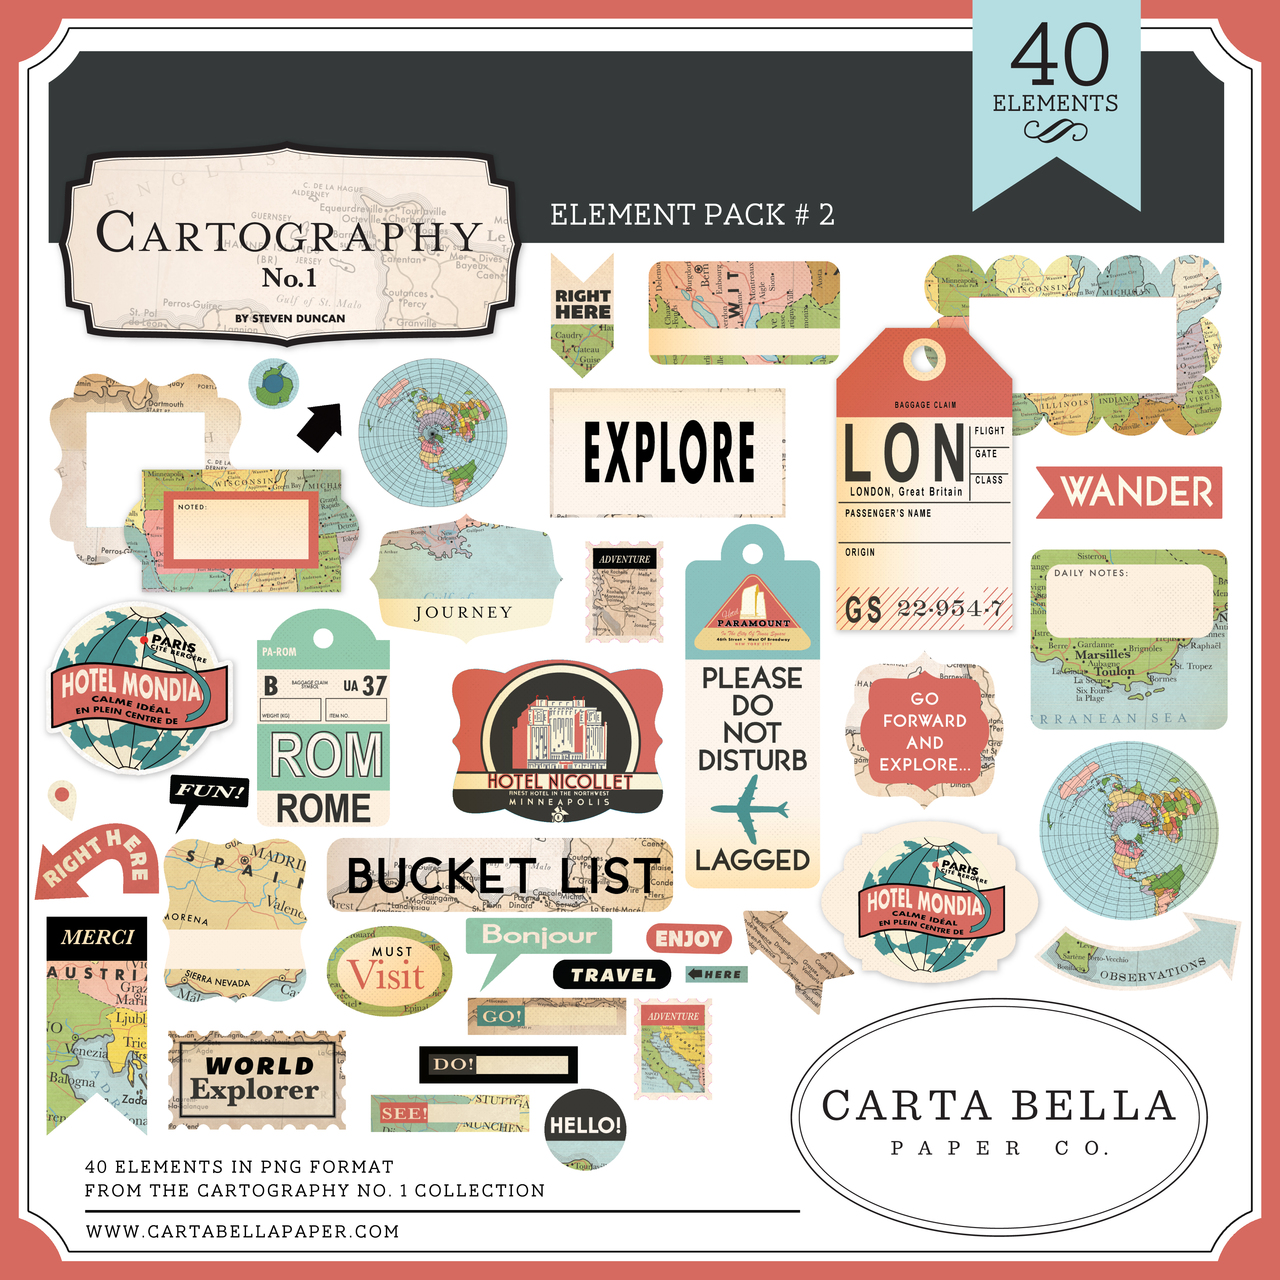 Cartography No. 1 Element Pack #2